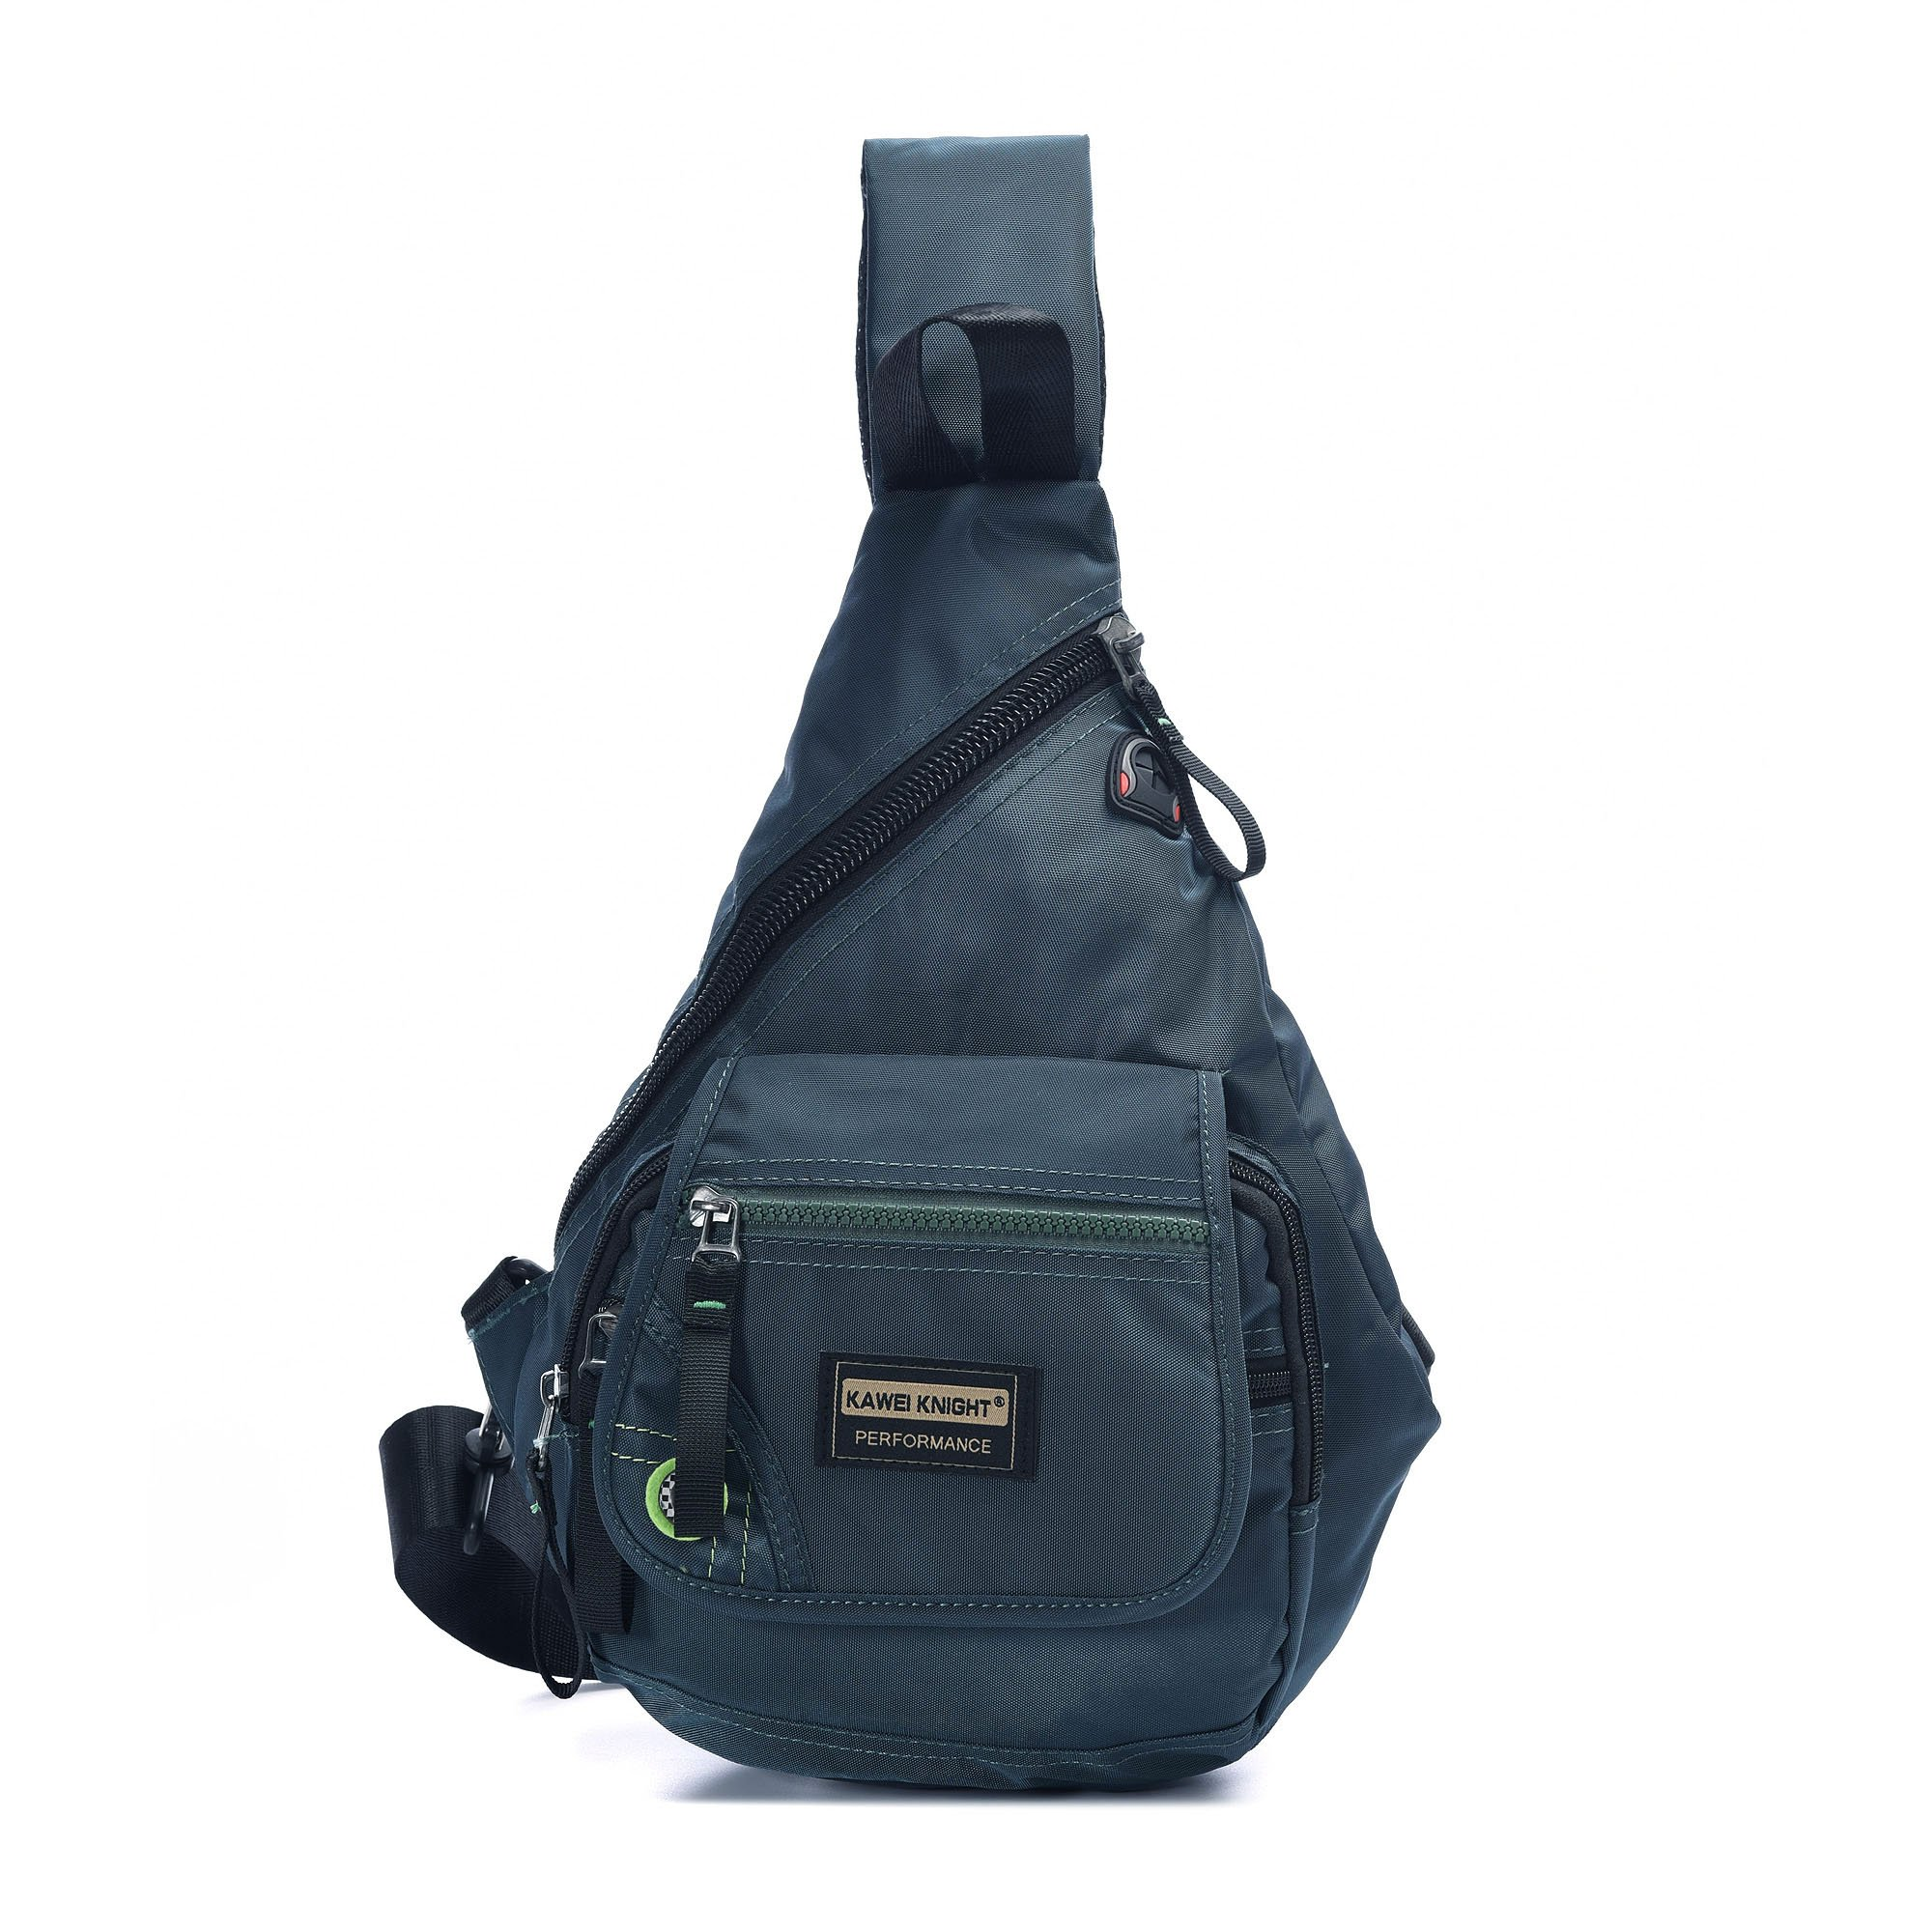 DDDH Small Sling Bag Shoulder backpack Waterproof Nylon Outdoor Chest Bagpack For Men Women (dark green)